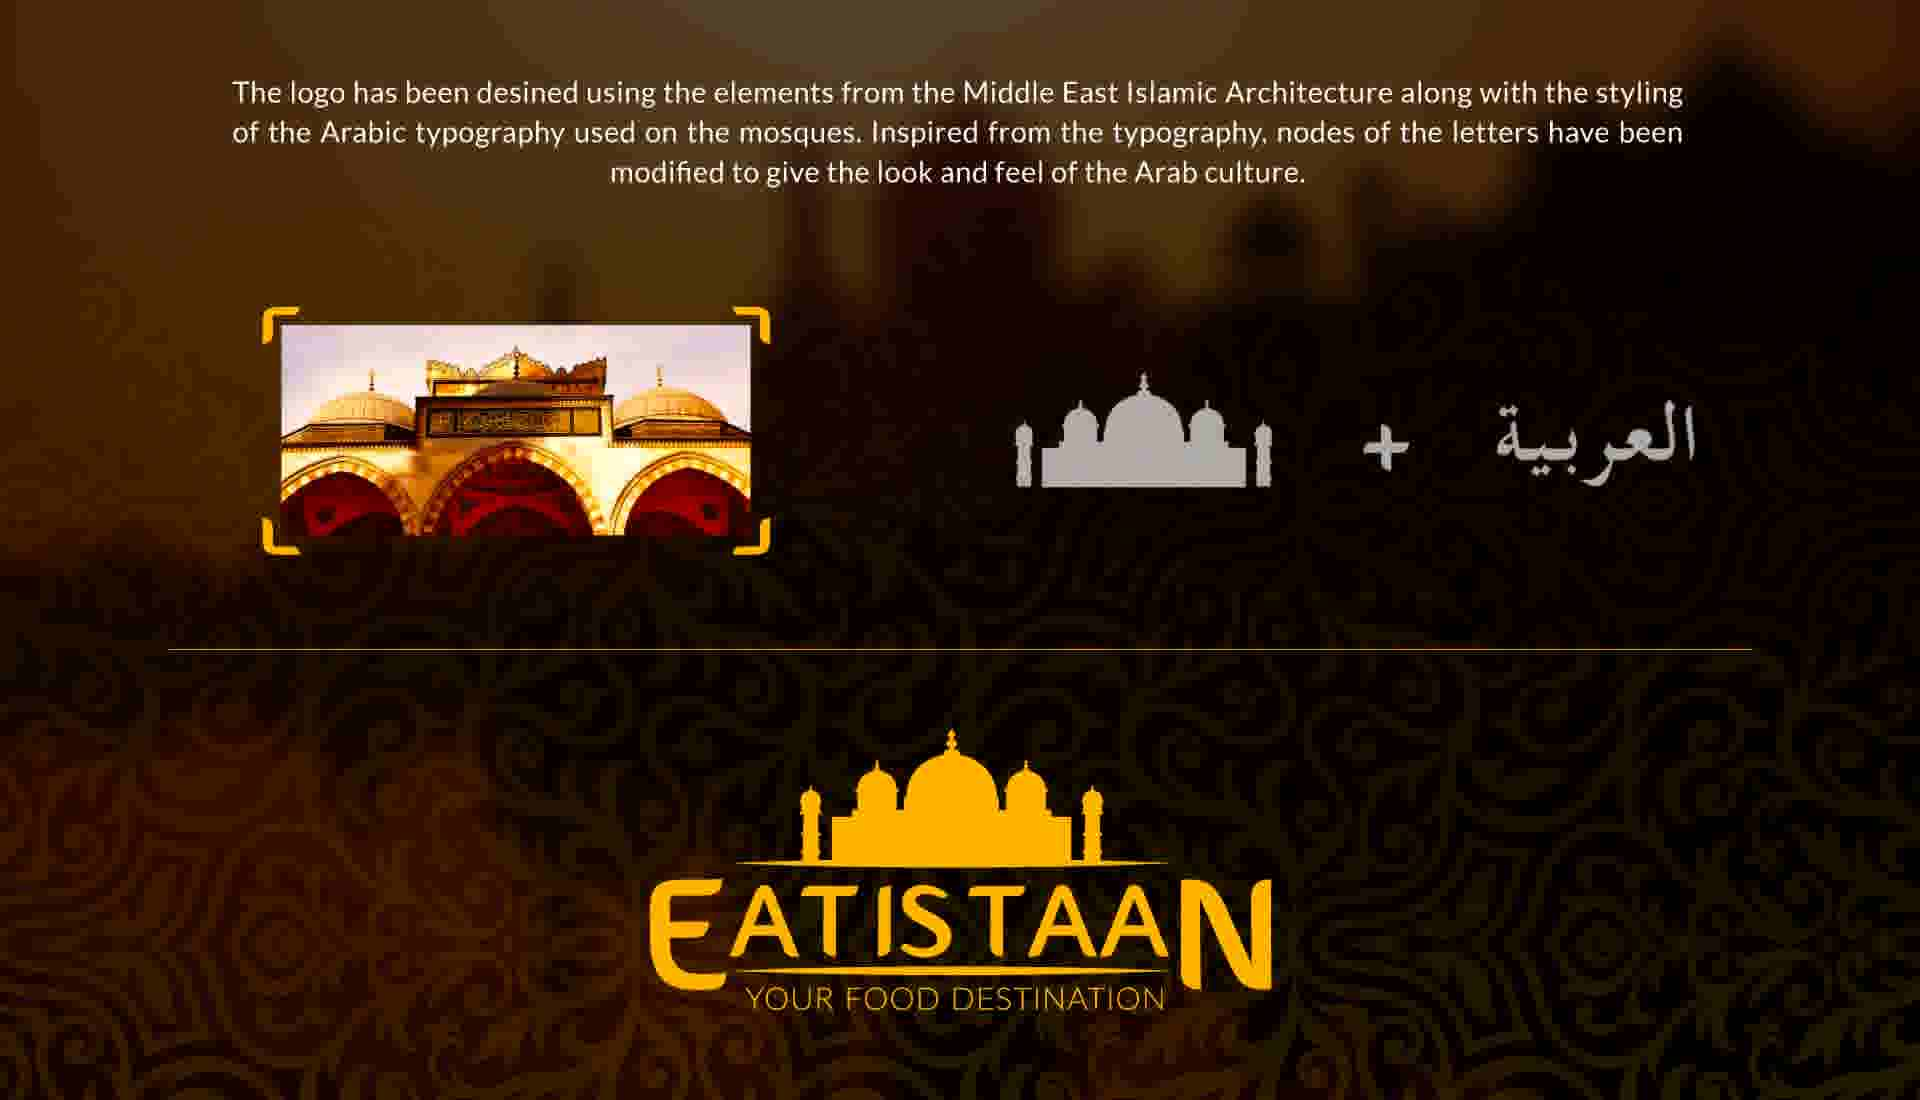 Eatistaan - Your Food Destination